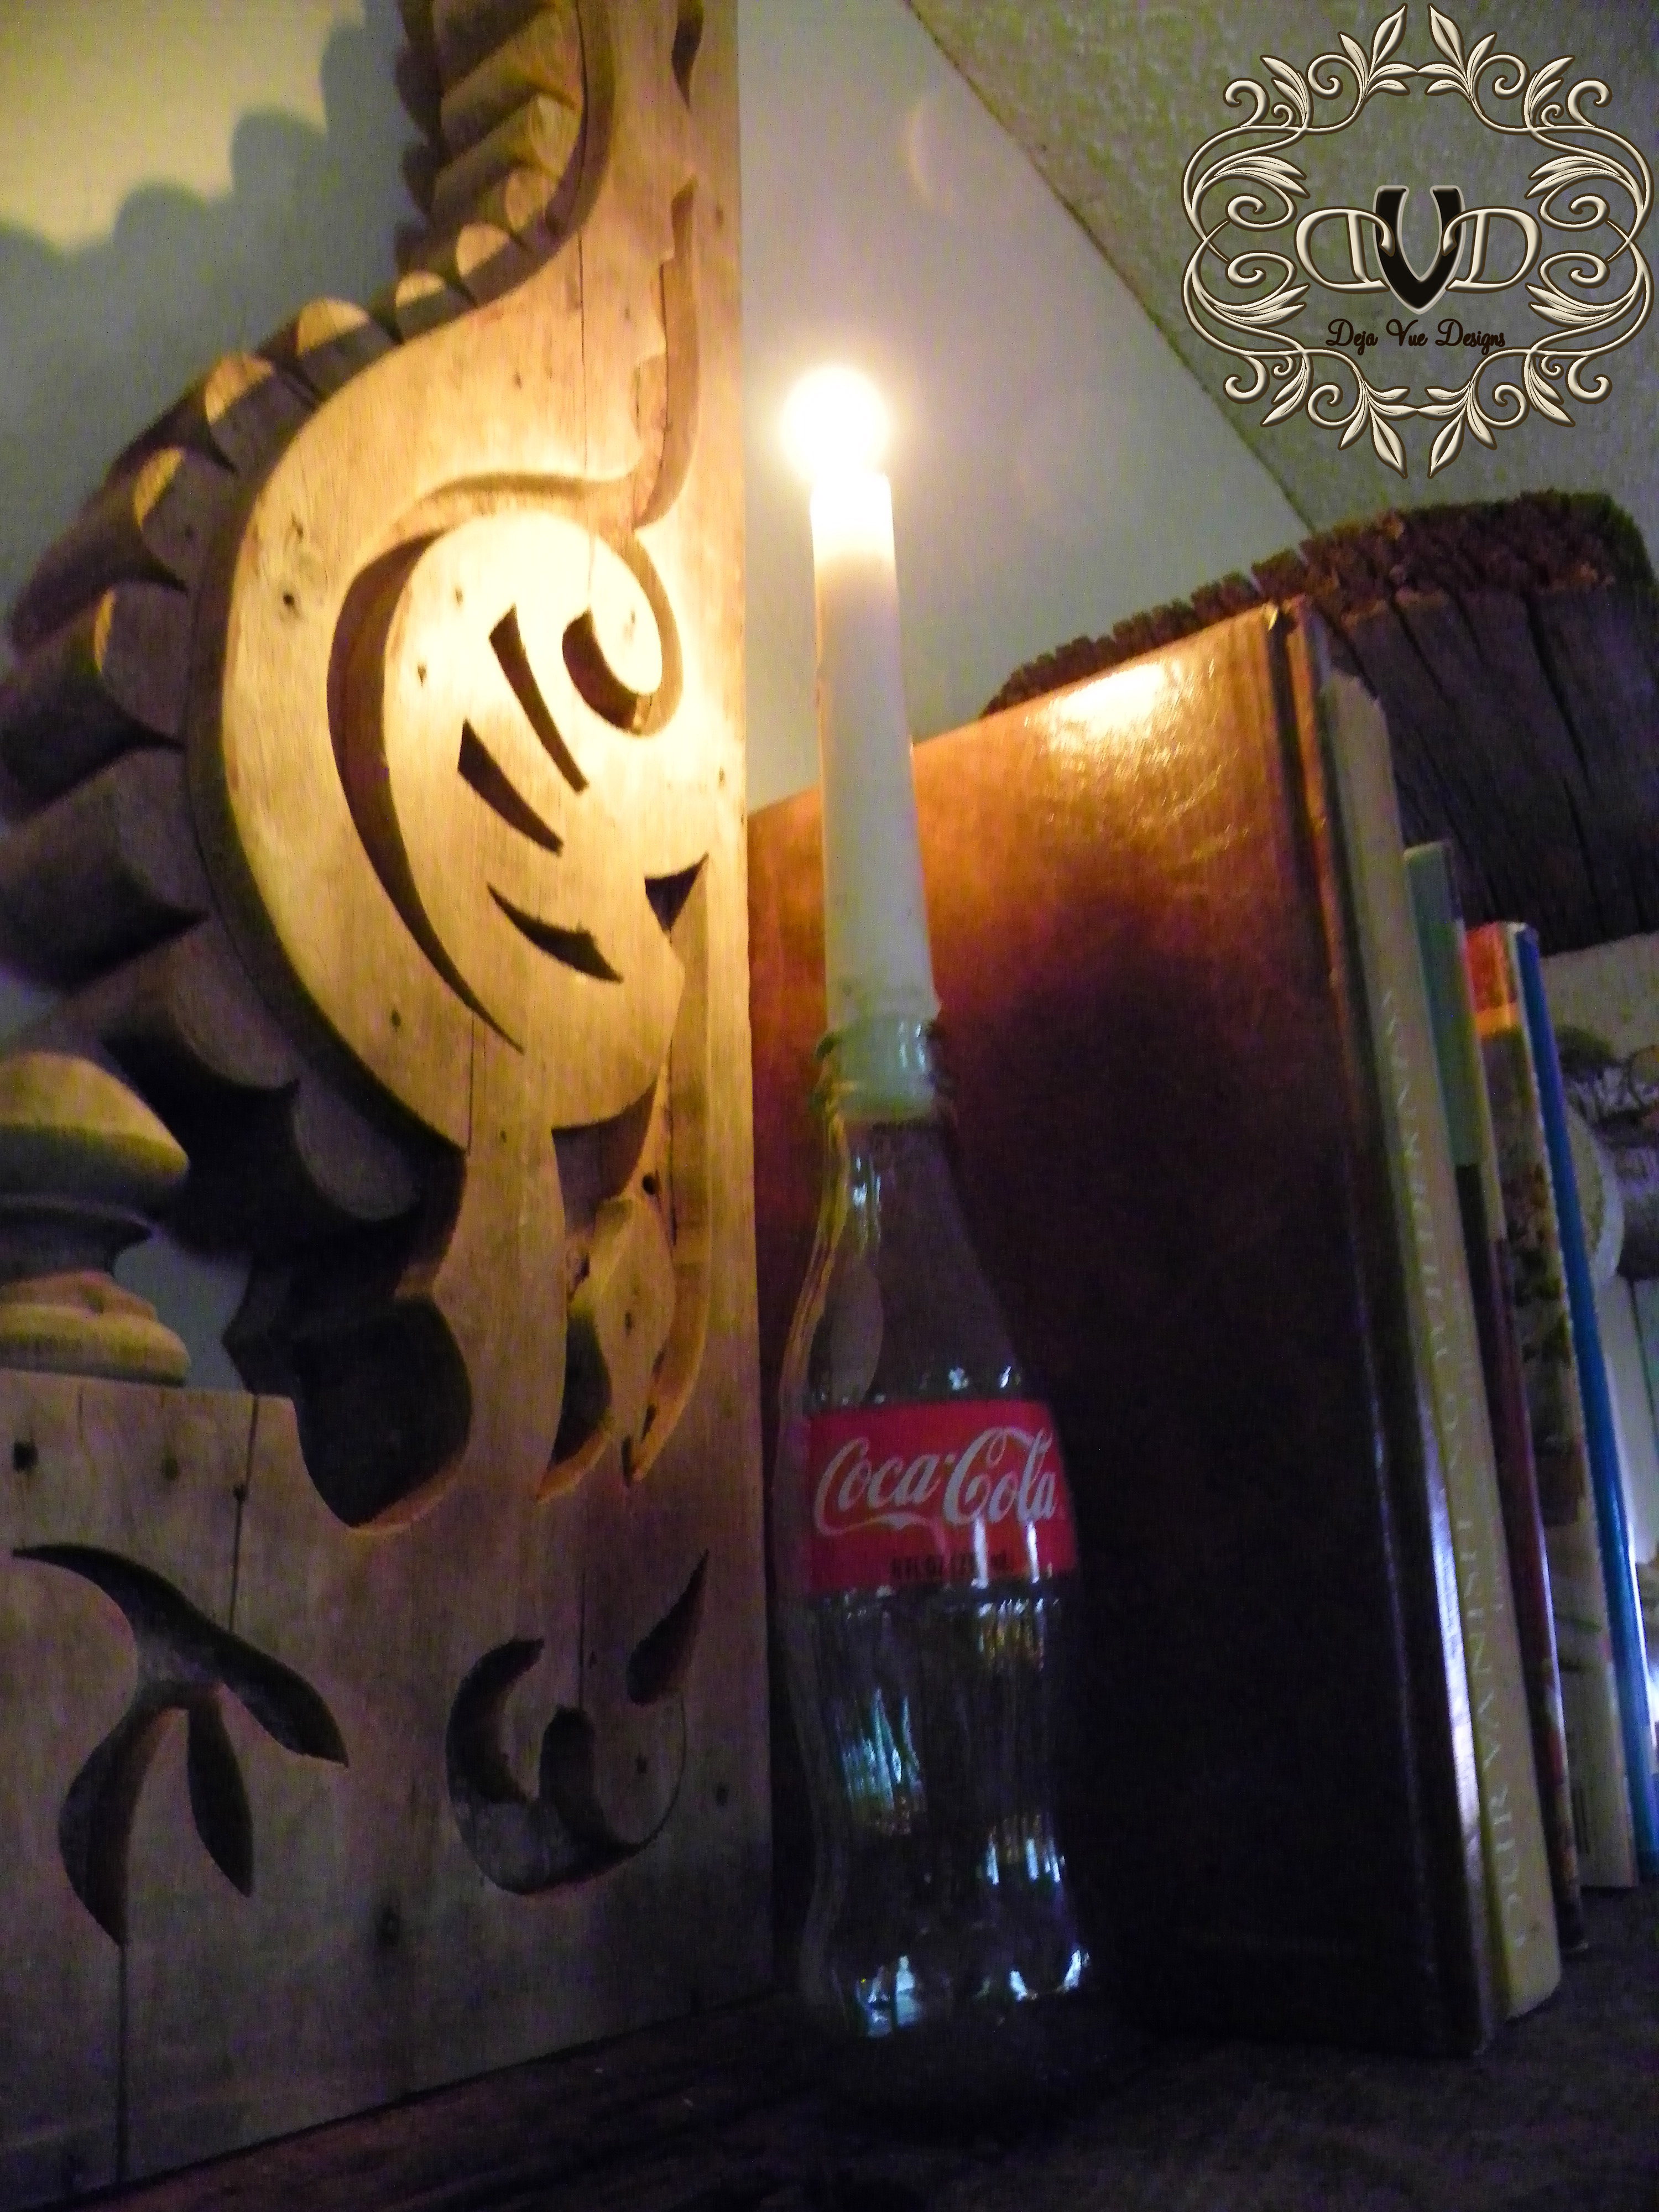 retro coke bottle for a candle holder